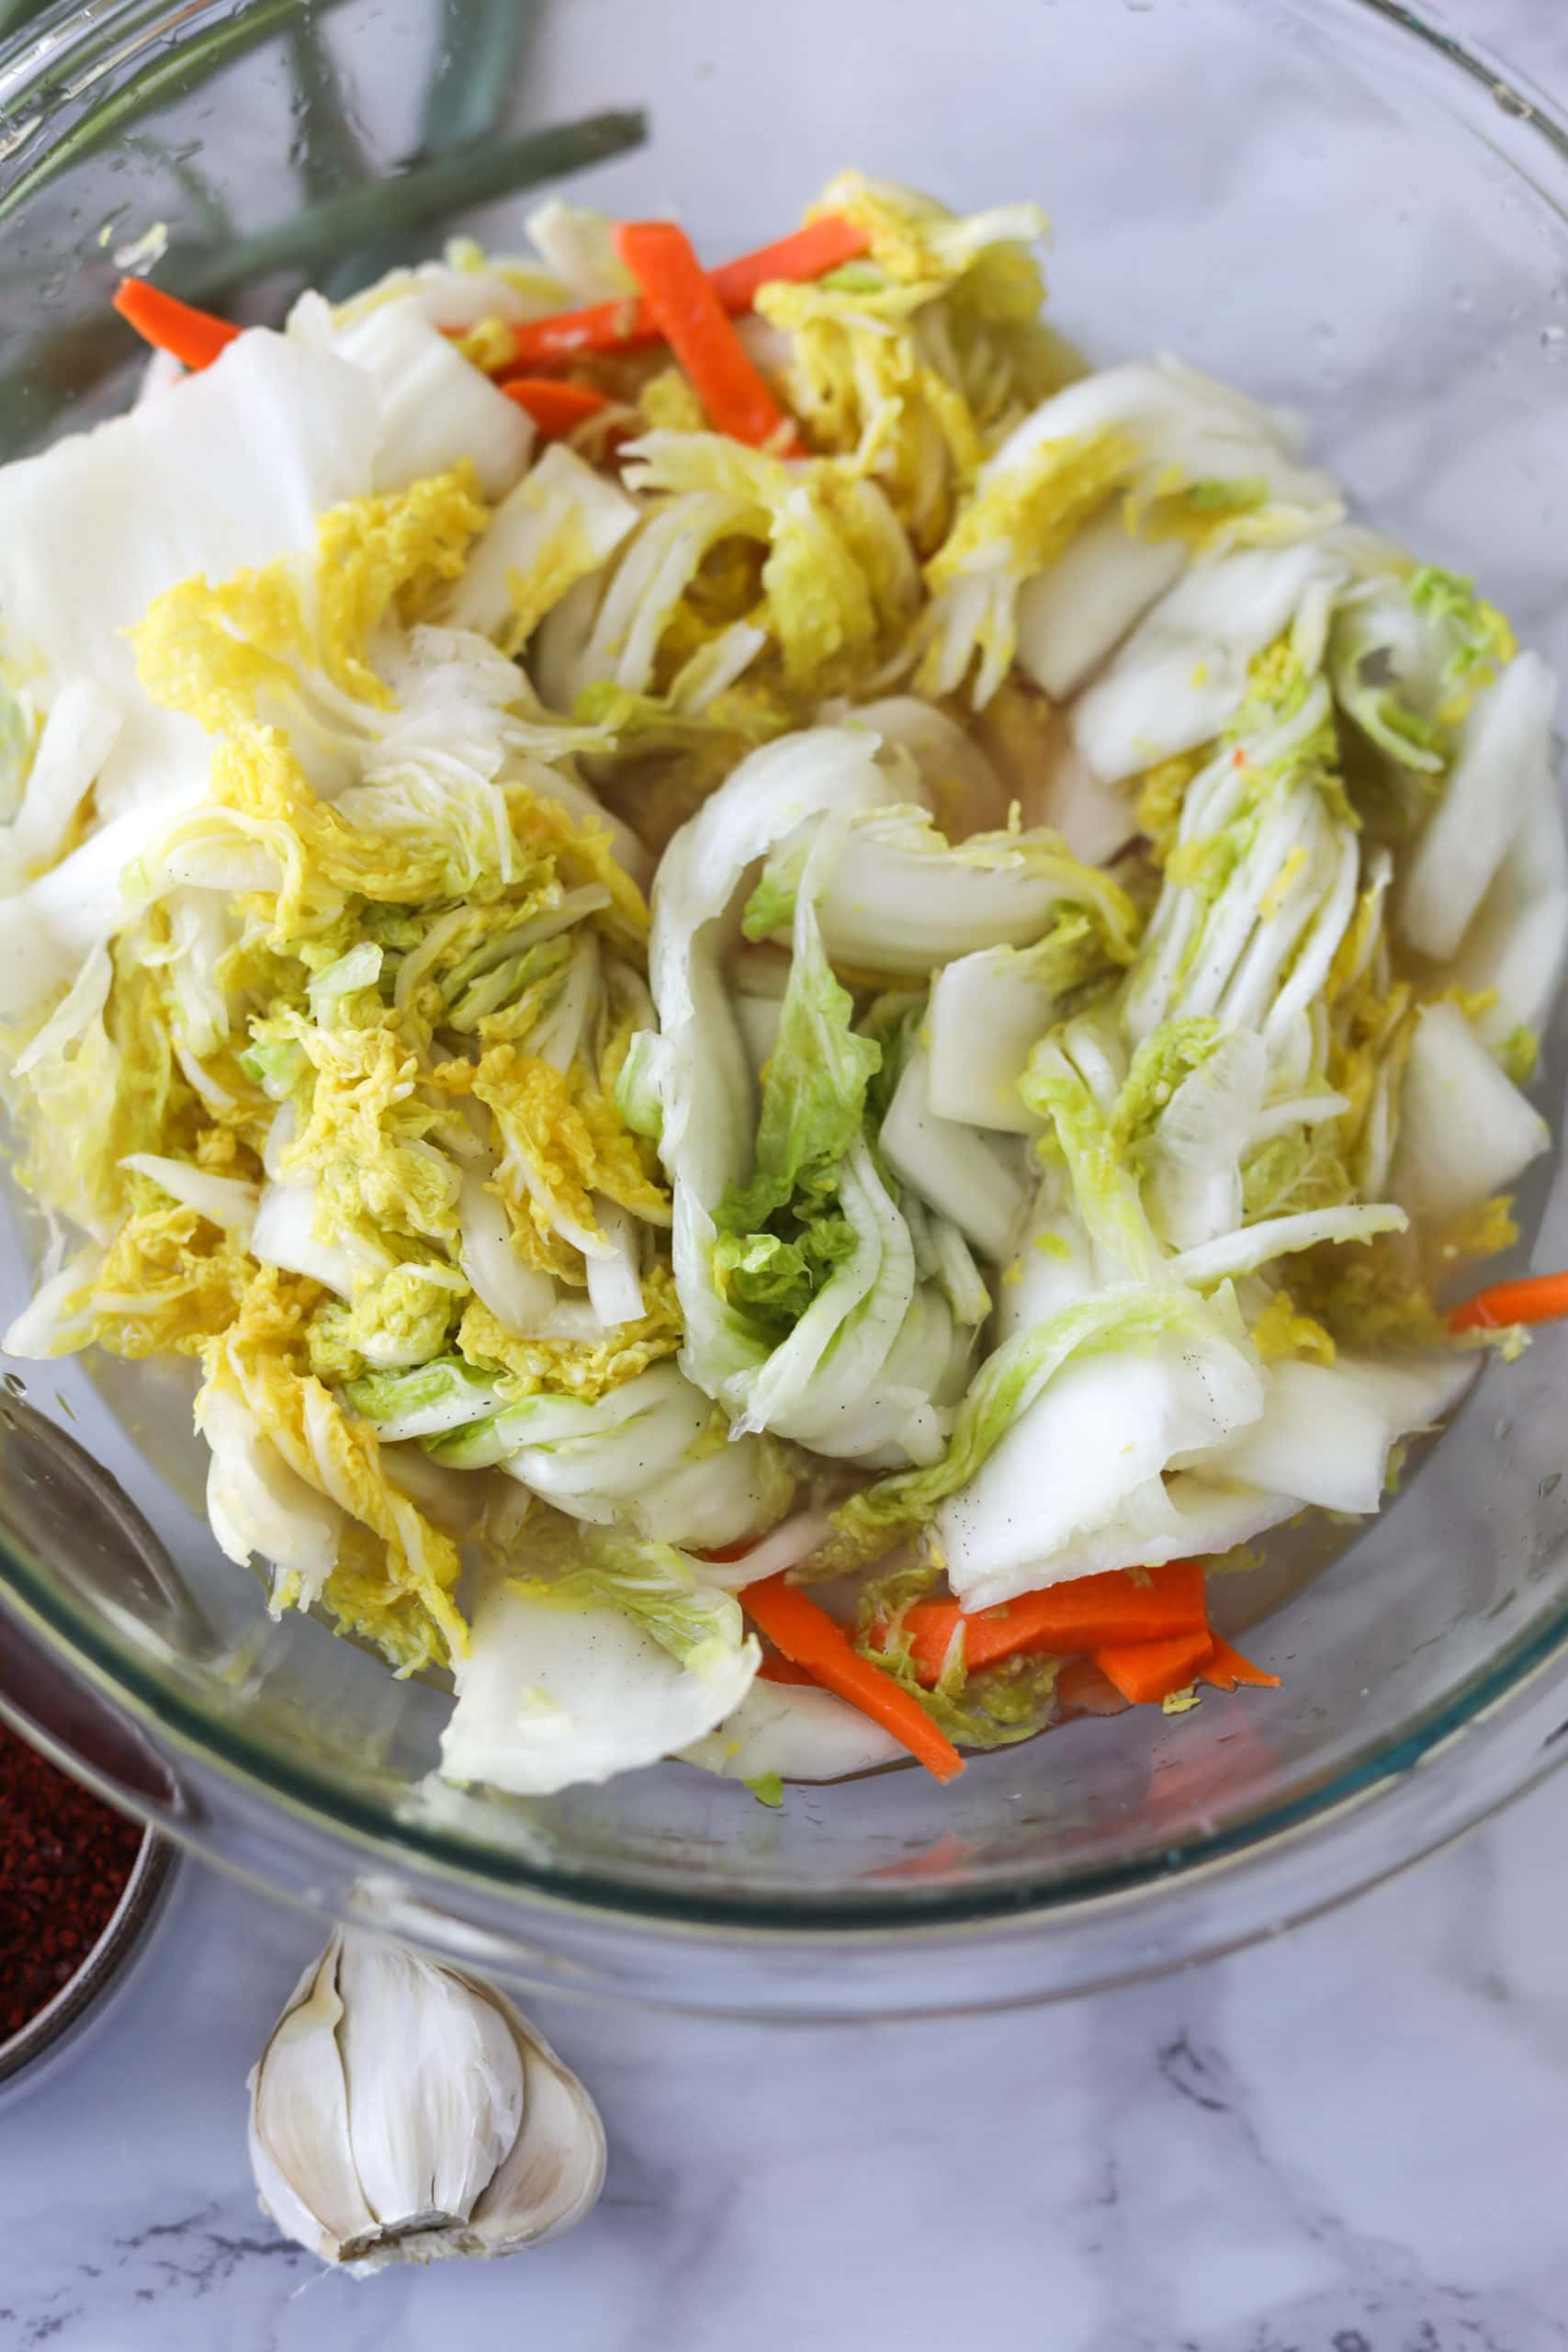 Salt that has been massaged in napa cabbage, carrot and daikon radish